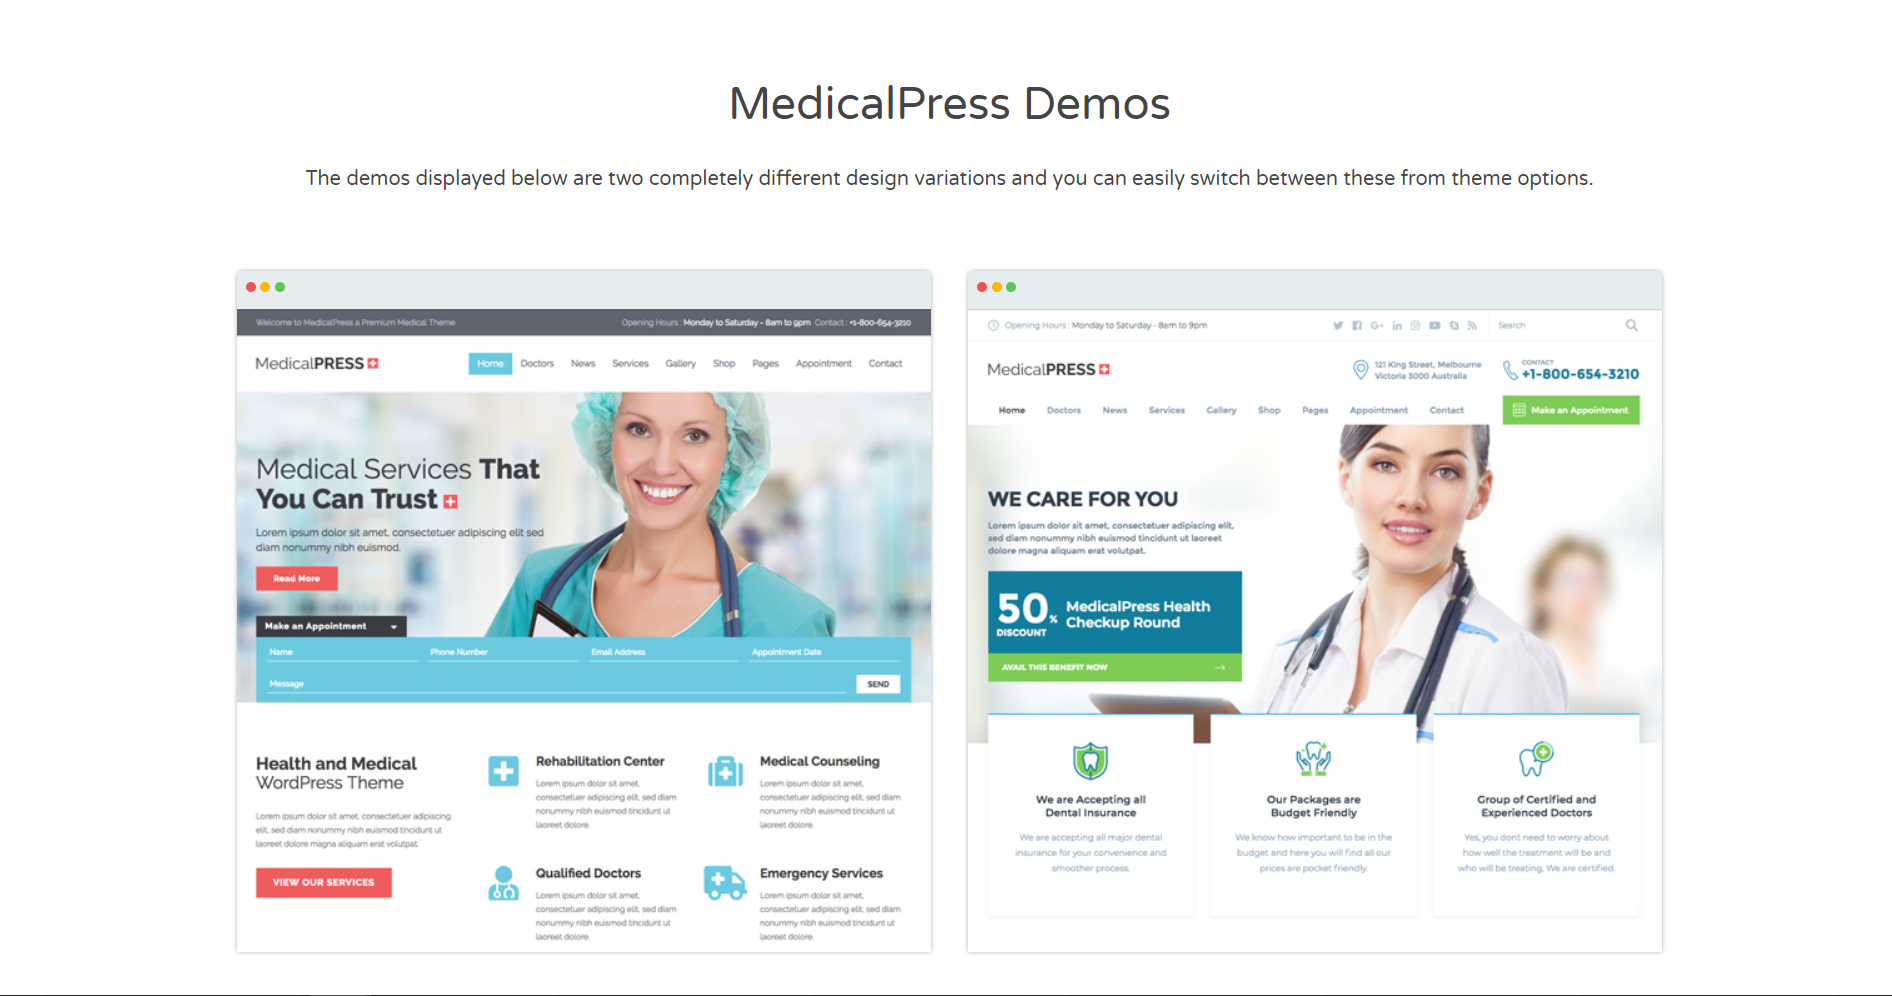 43. MedicalPress - Health and Medical WordPress Theme